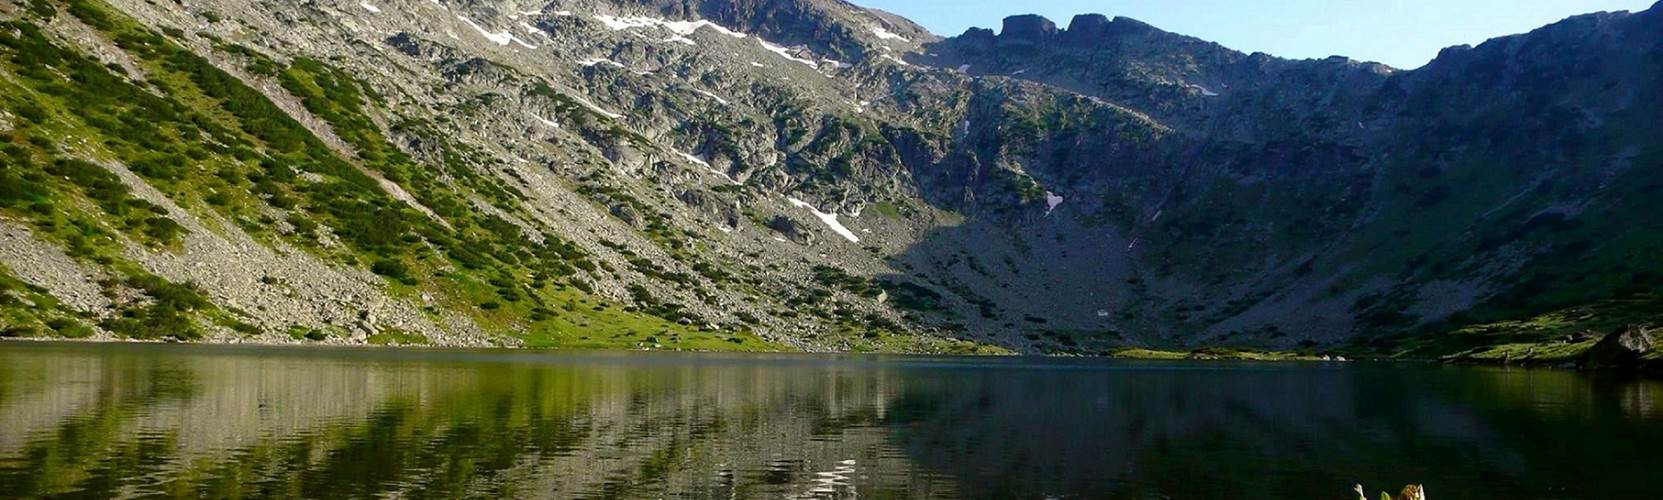 Summits and Ridges of Bugaria - Seven Rila Lakes